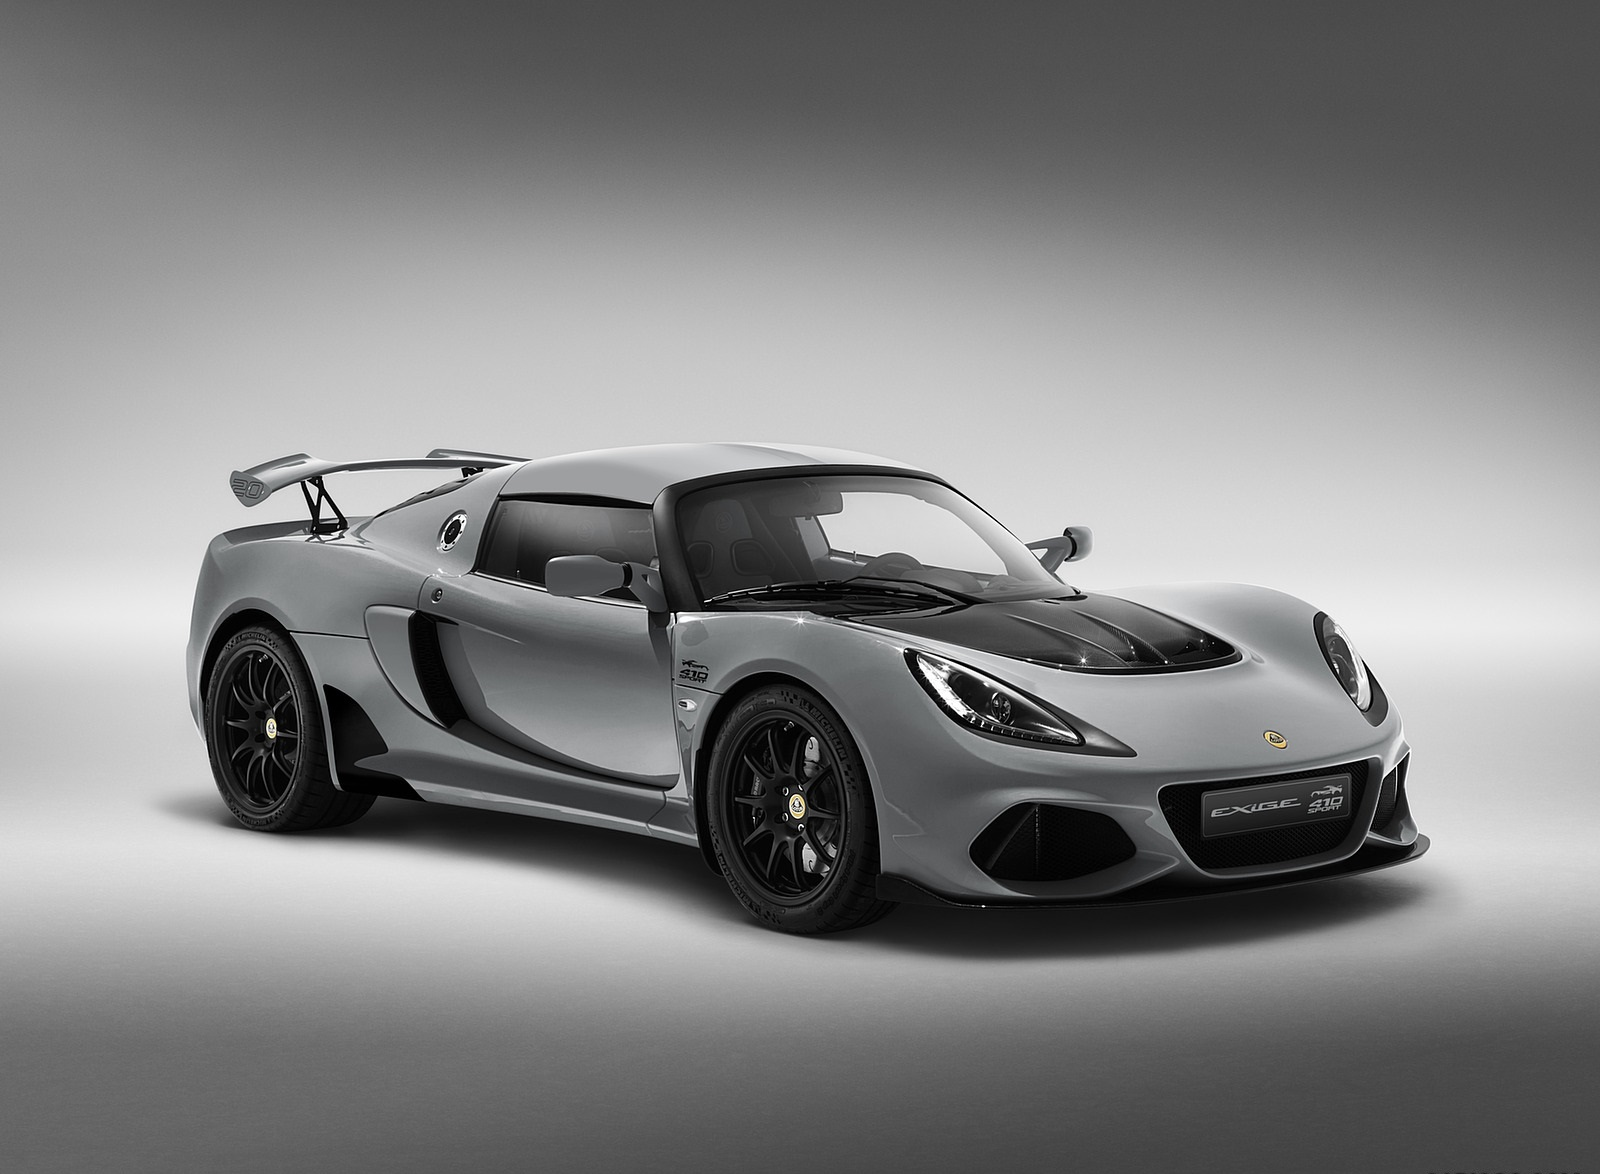 2020 Lotus Exige Sport 410 20th Anniversary (Color: Arctic Silver) Front Three-Quarter Wallpapers (2)